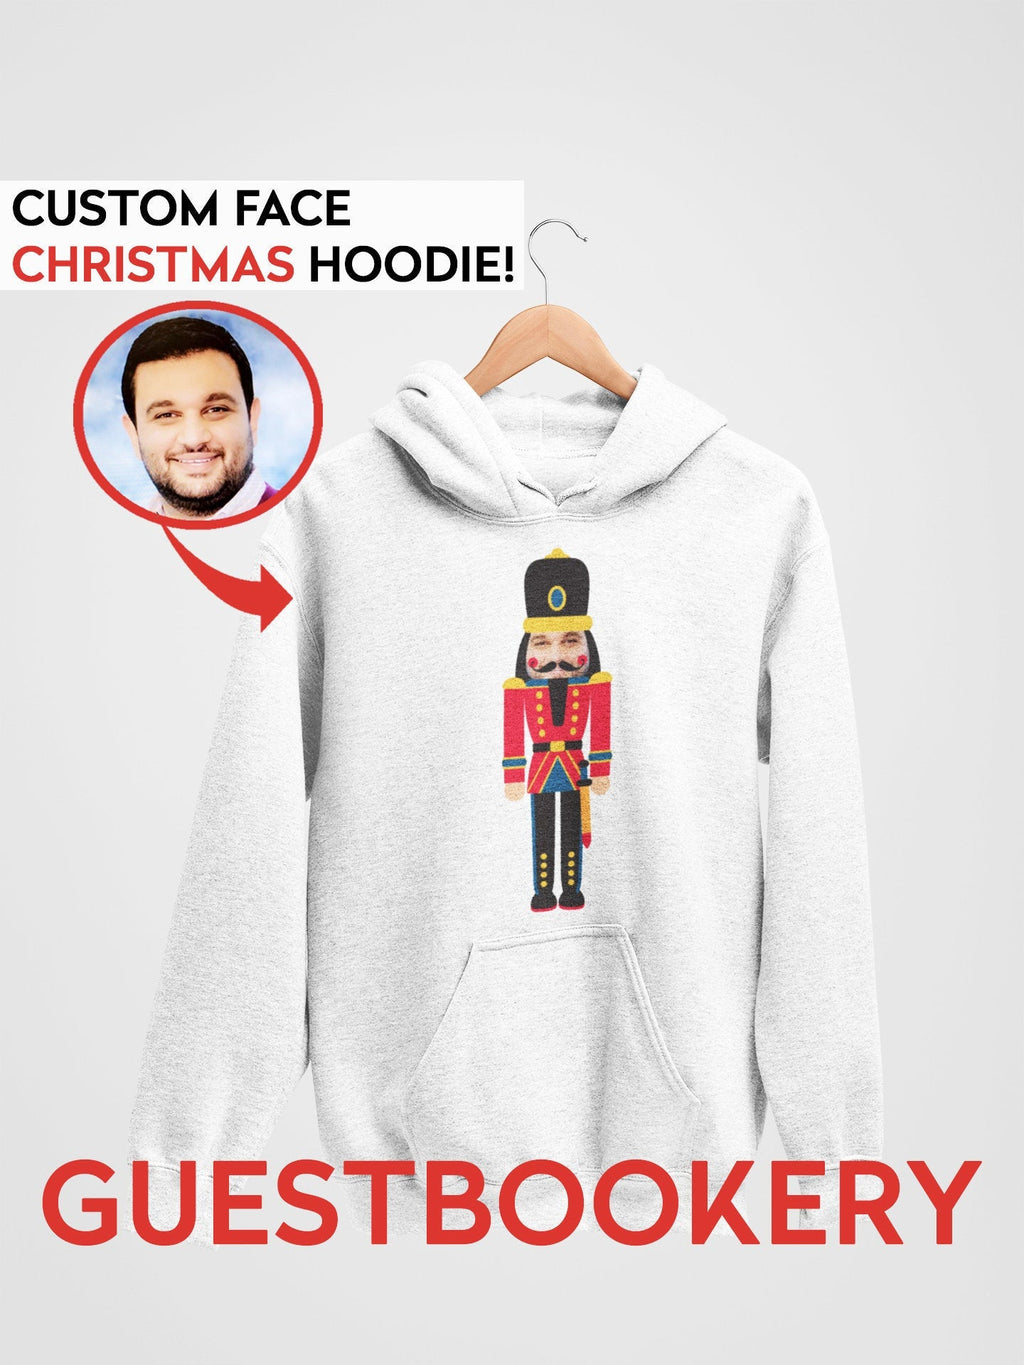 Custom Face Ugly Christmas Hoodie - Nutcracker - Guestbookery